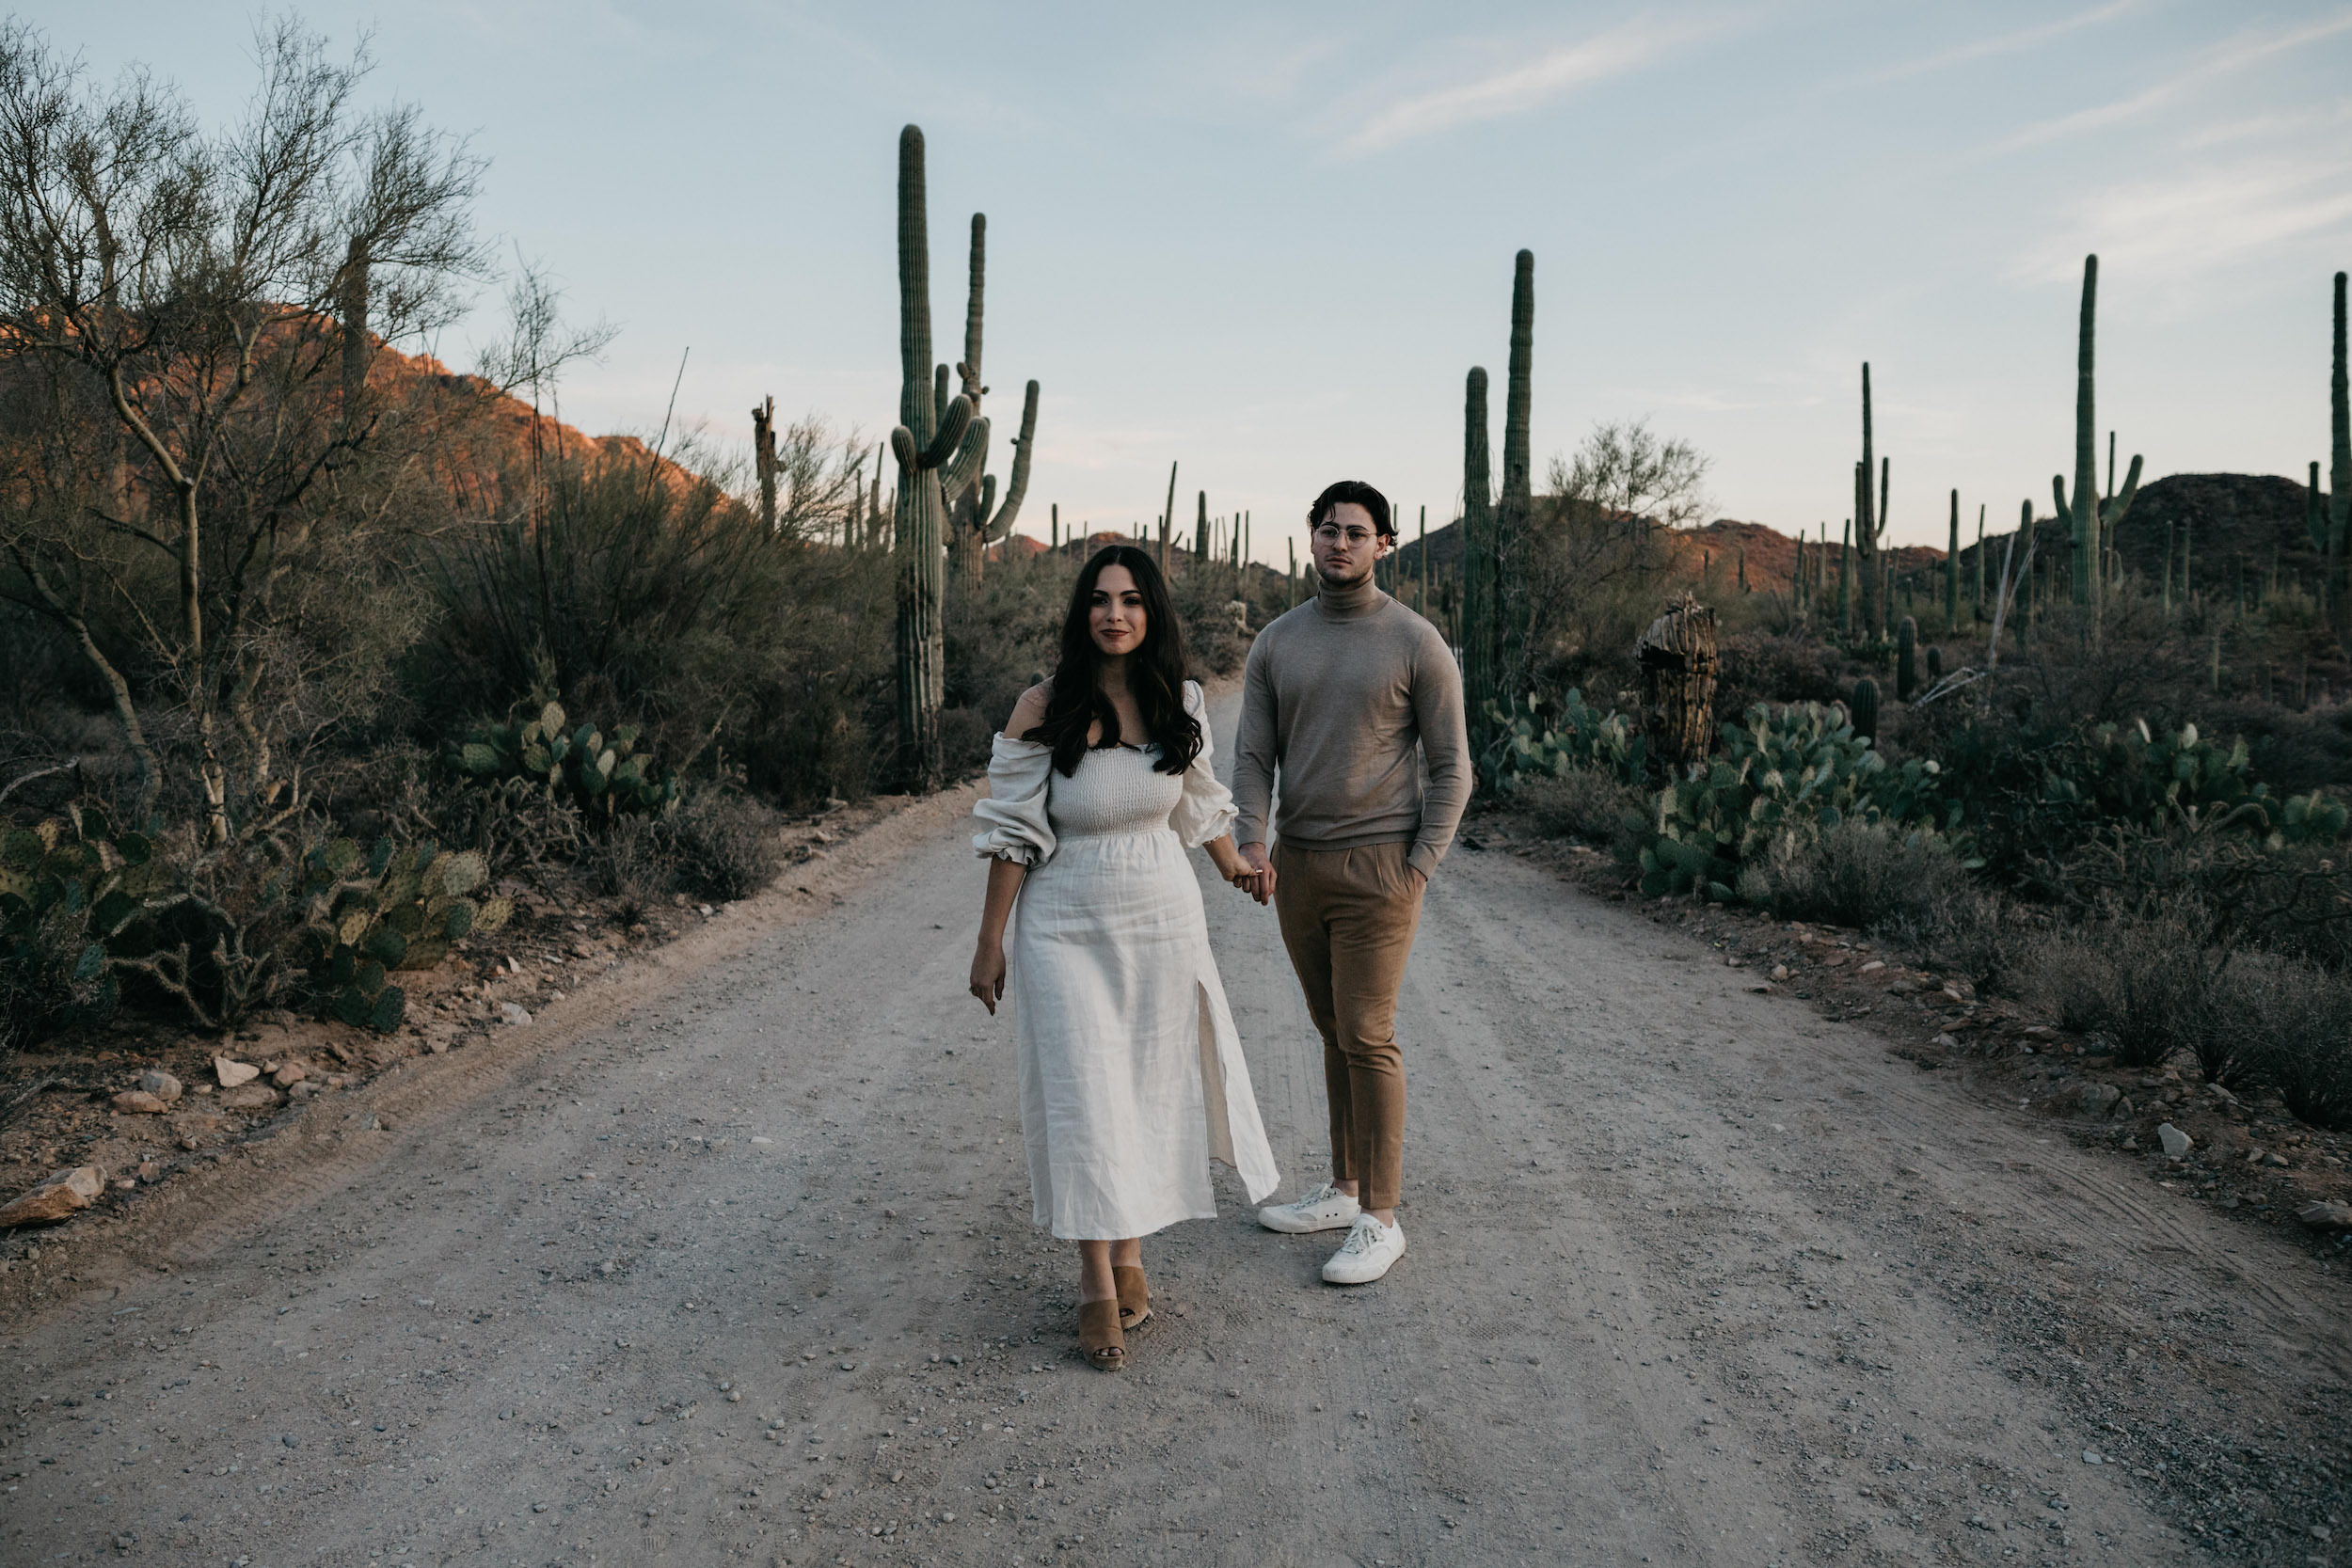 Couple posing for photo in the desert, image by Fatima Elreda Photo